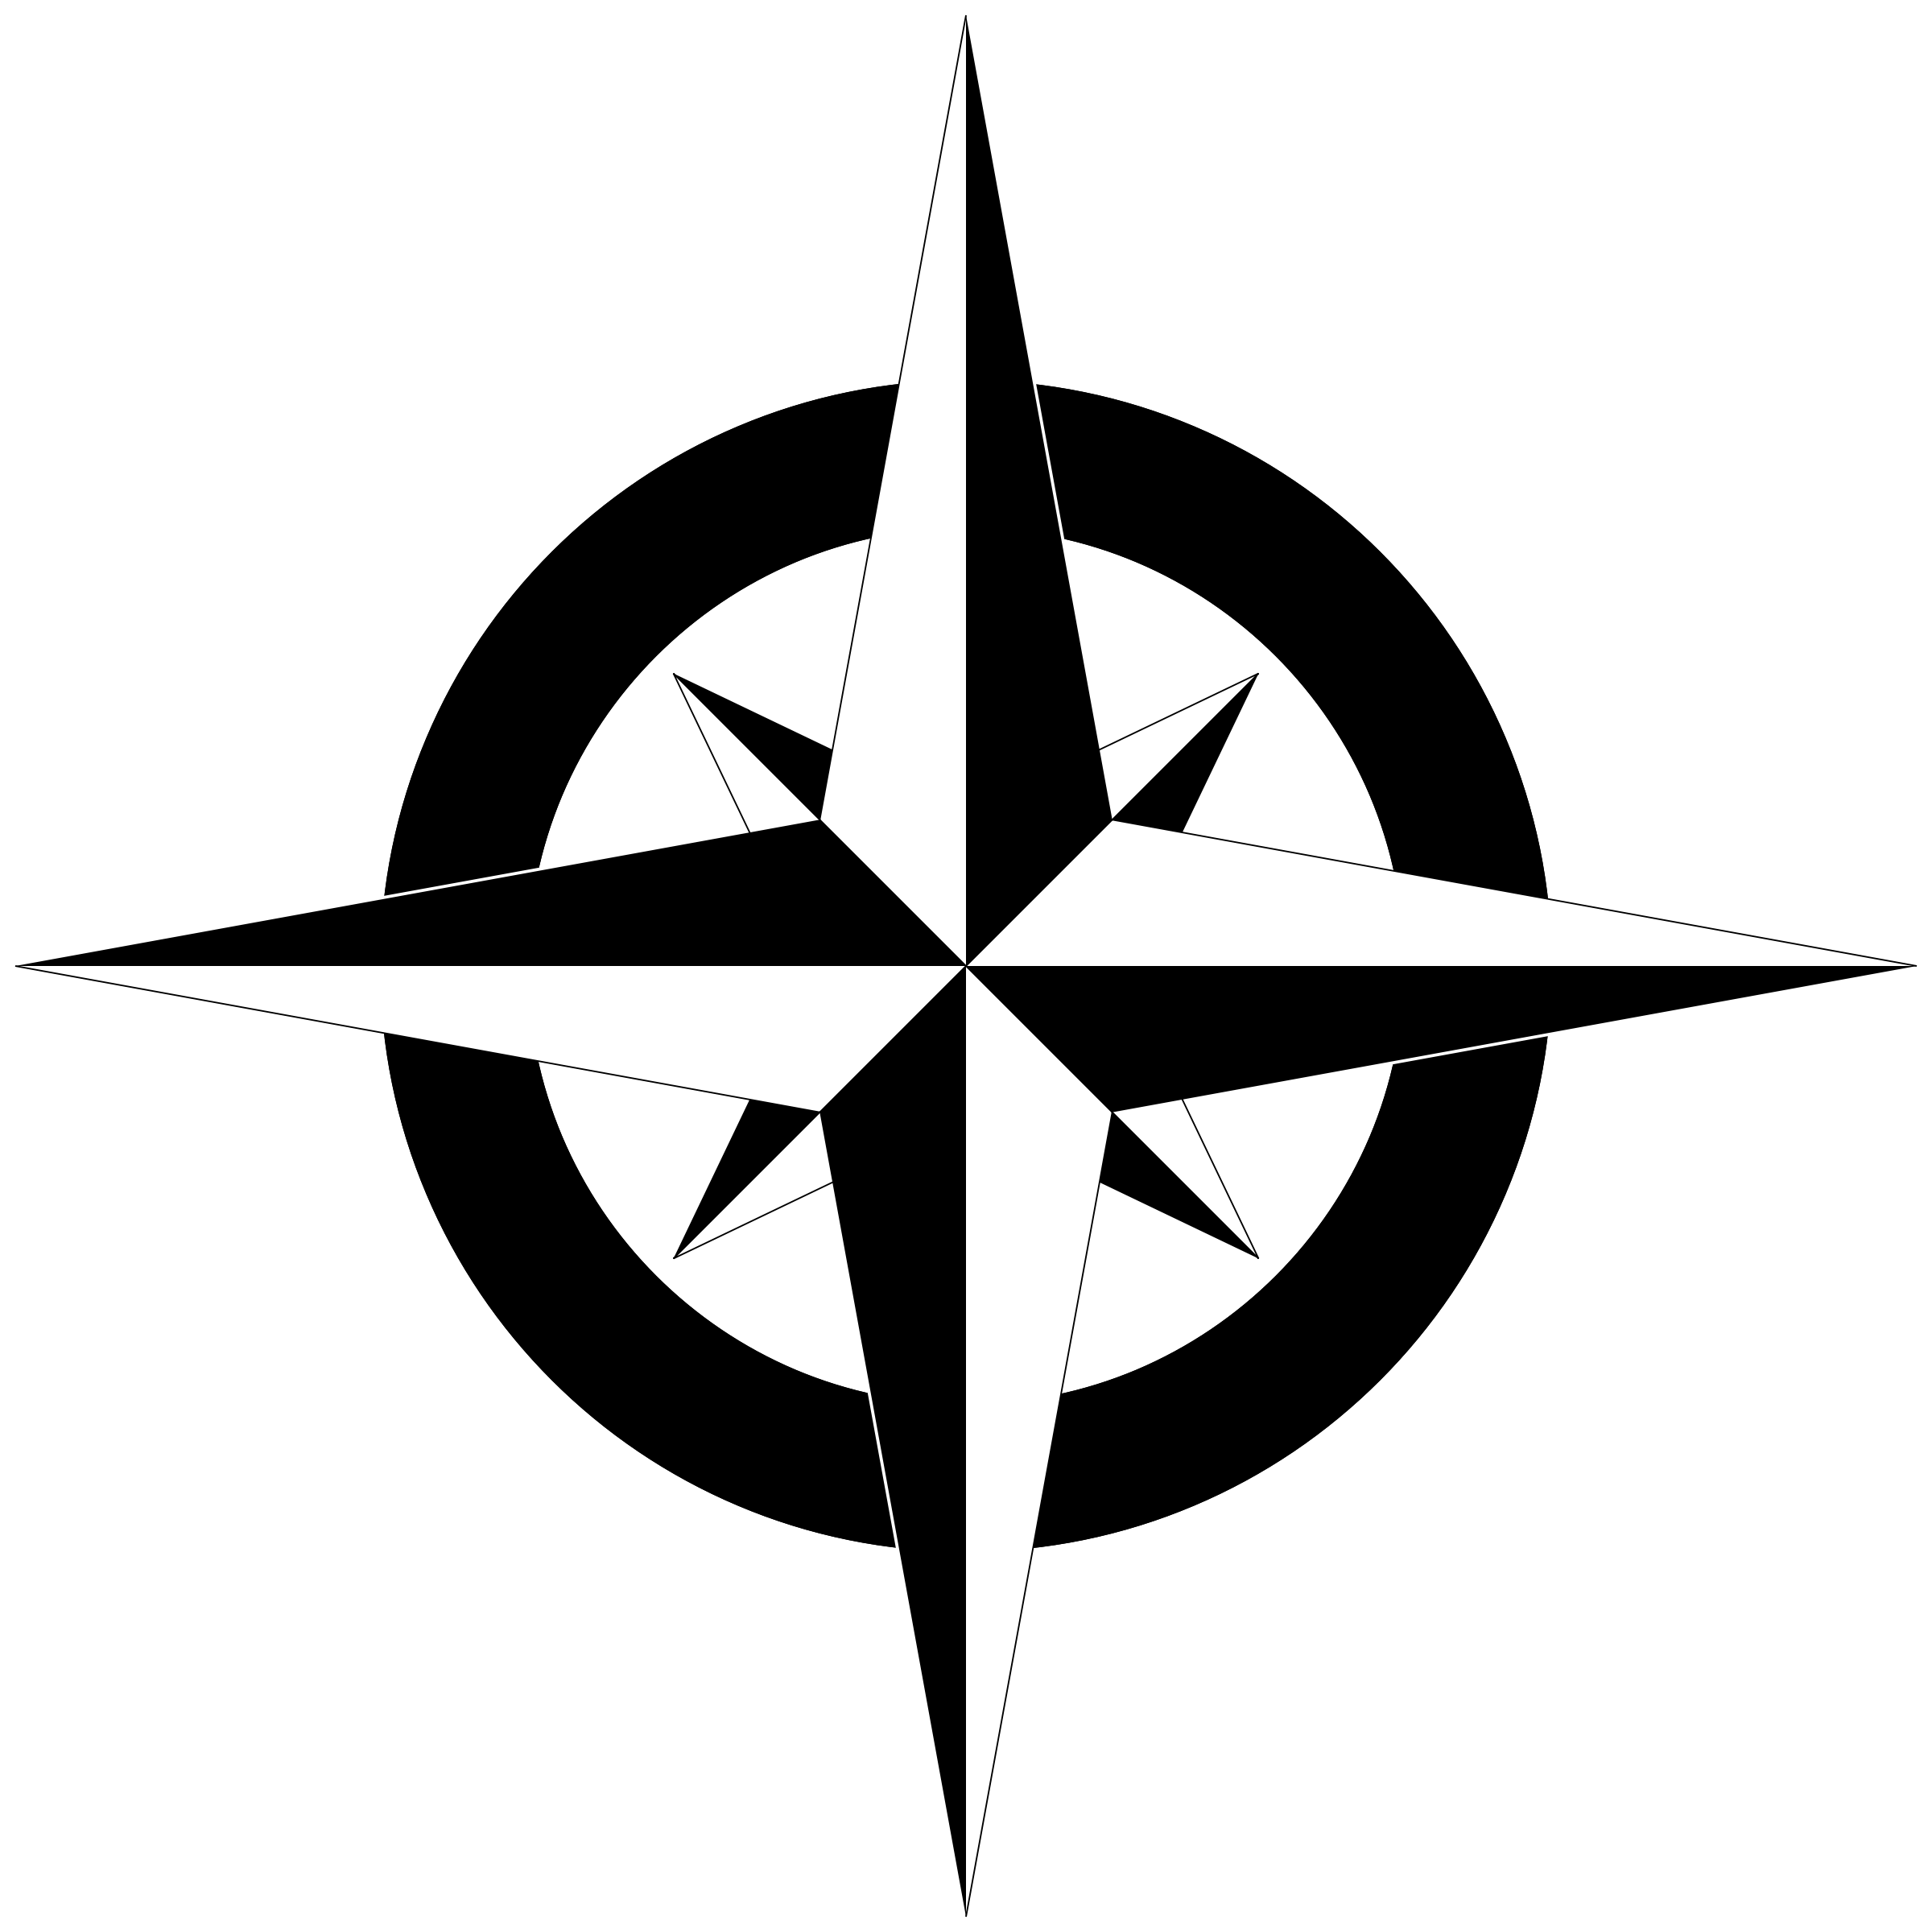 image royalty free download Simple Compass Clipart